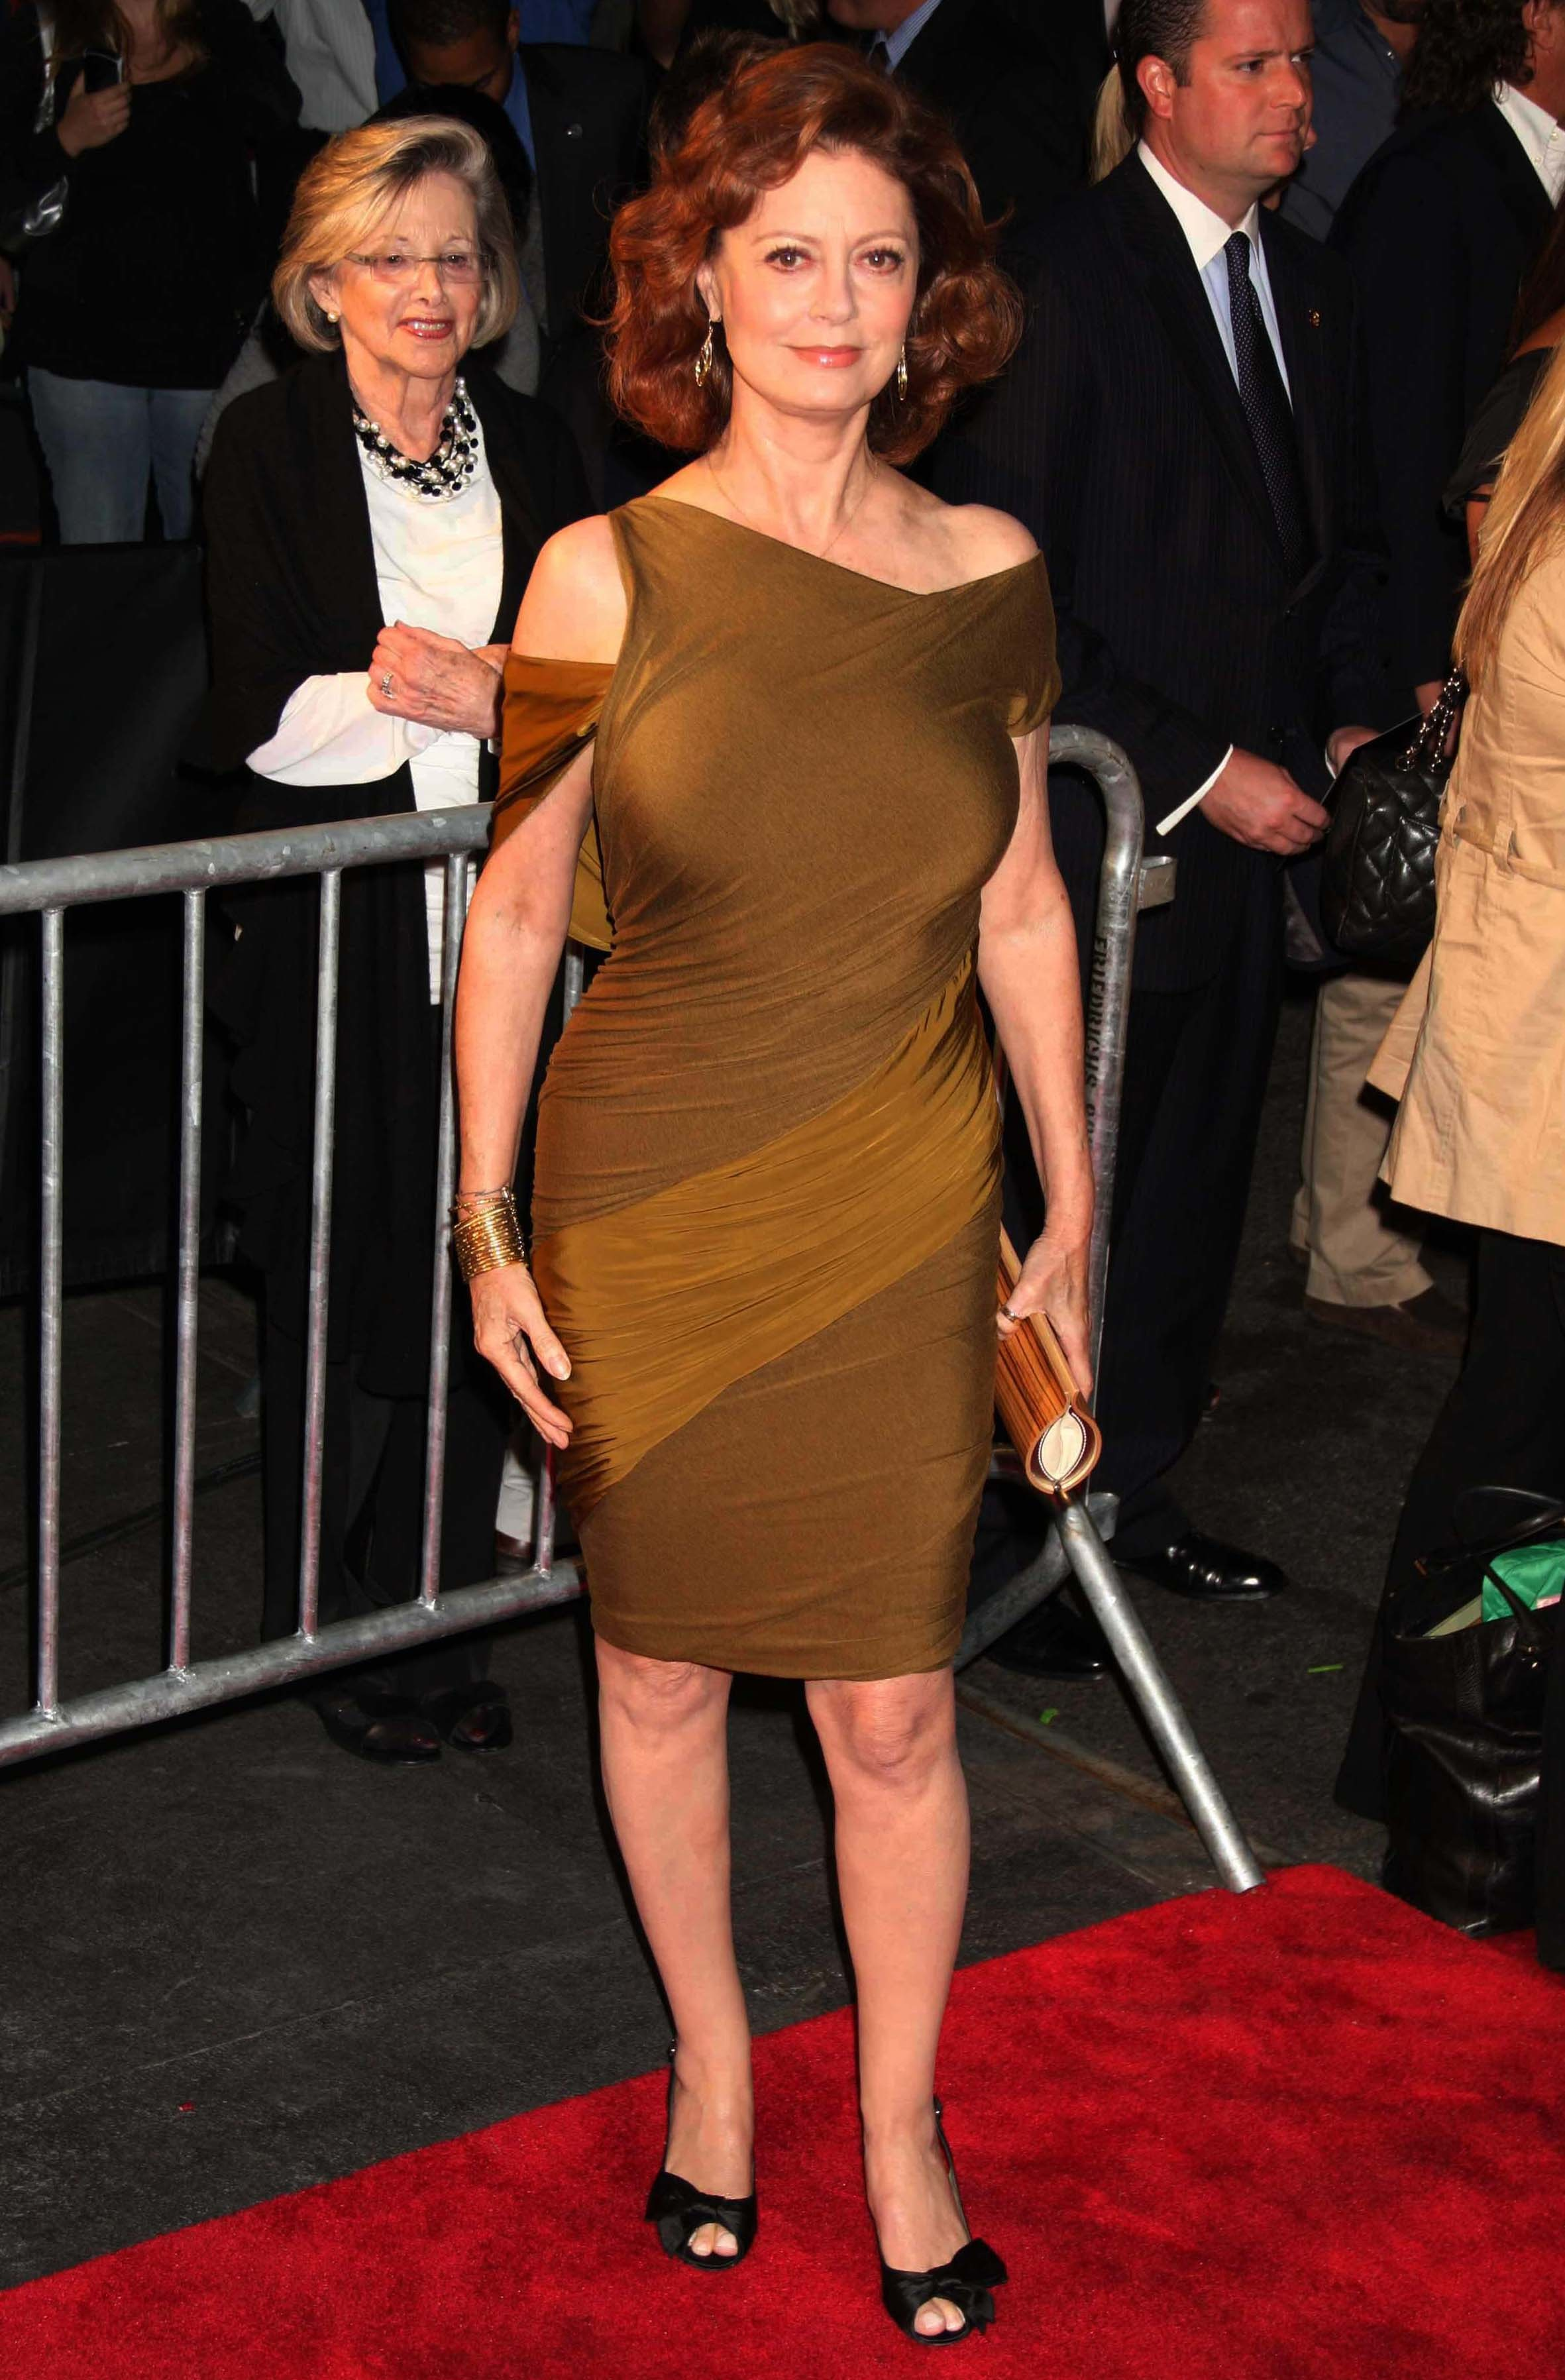 Hot Susan Sarandon nudes (28 foto and video), Topless, Hot, Twitter, cleavage 2006